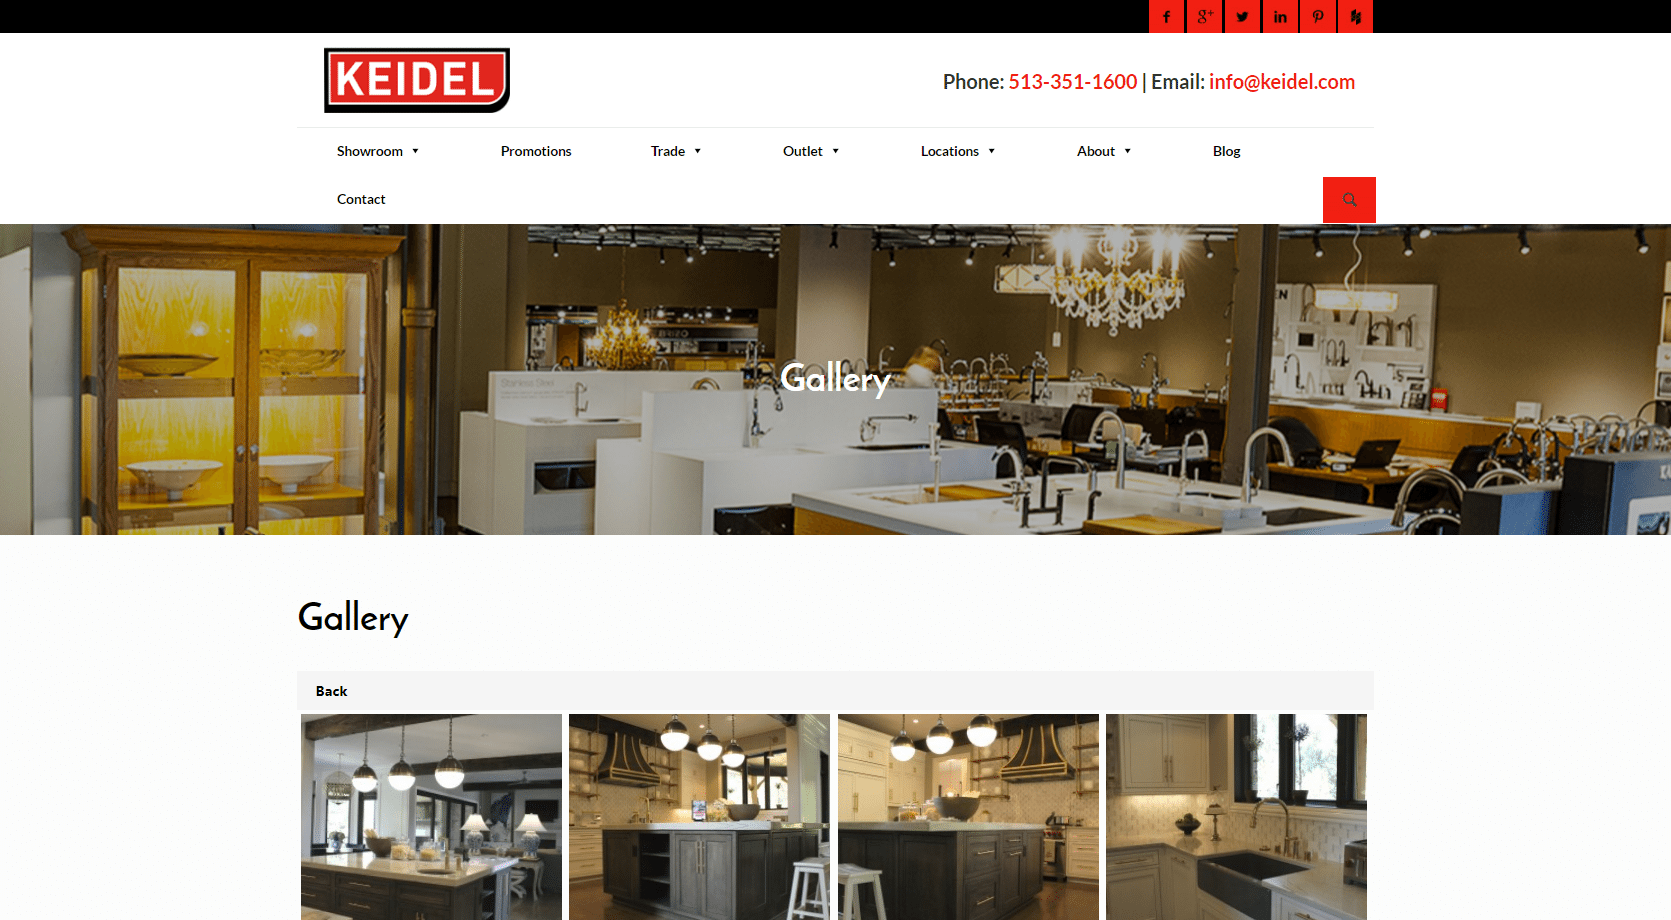 Keidel new website screencap